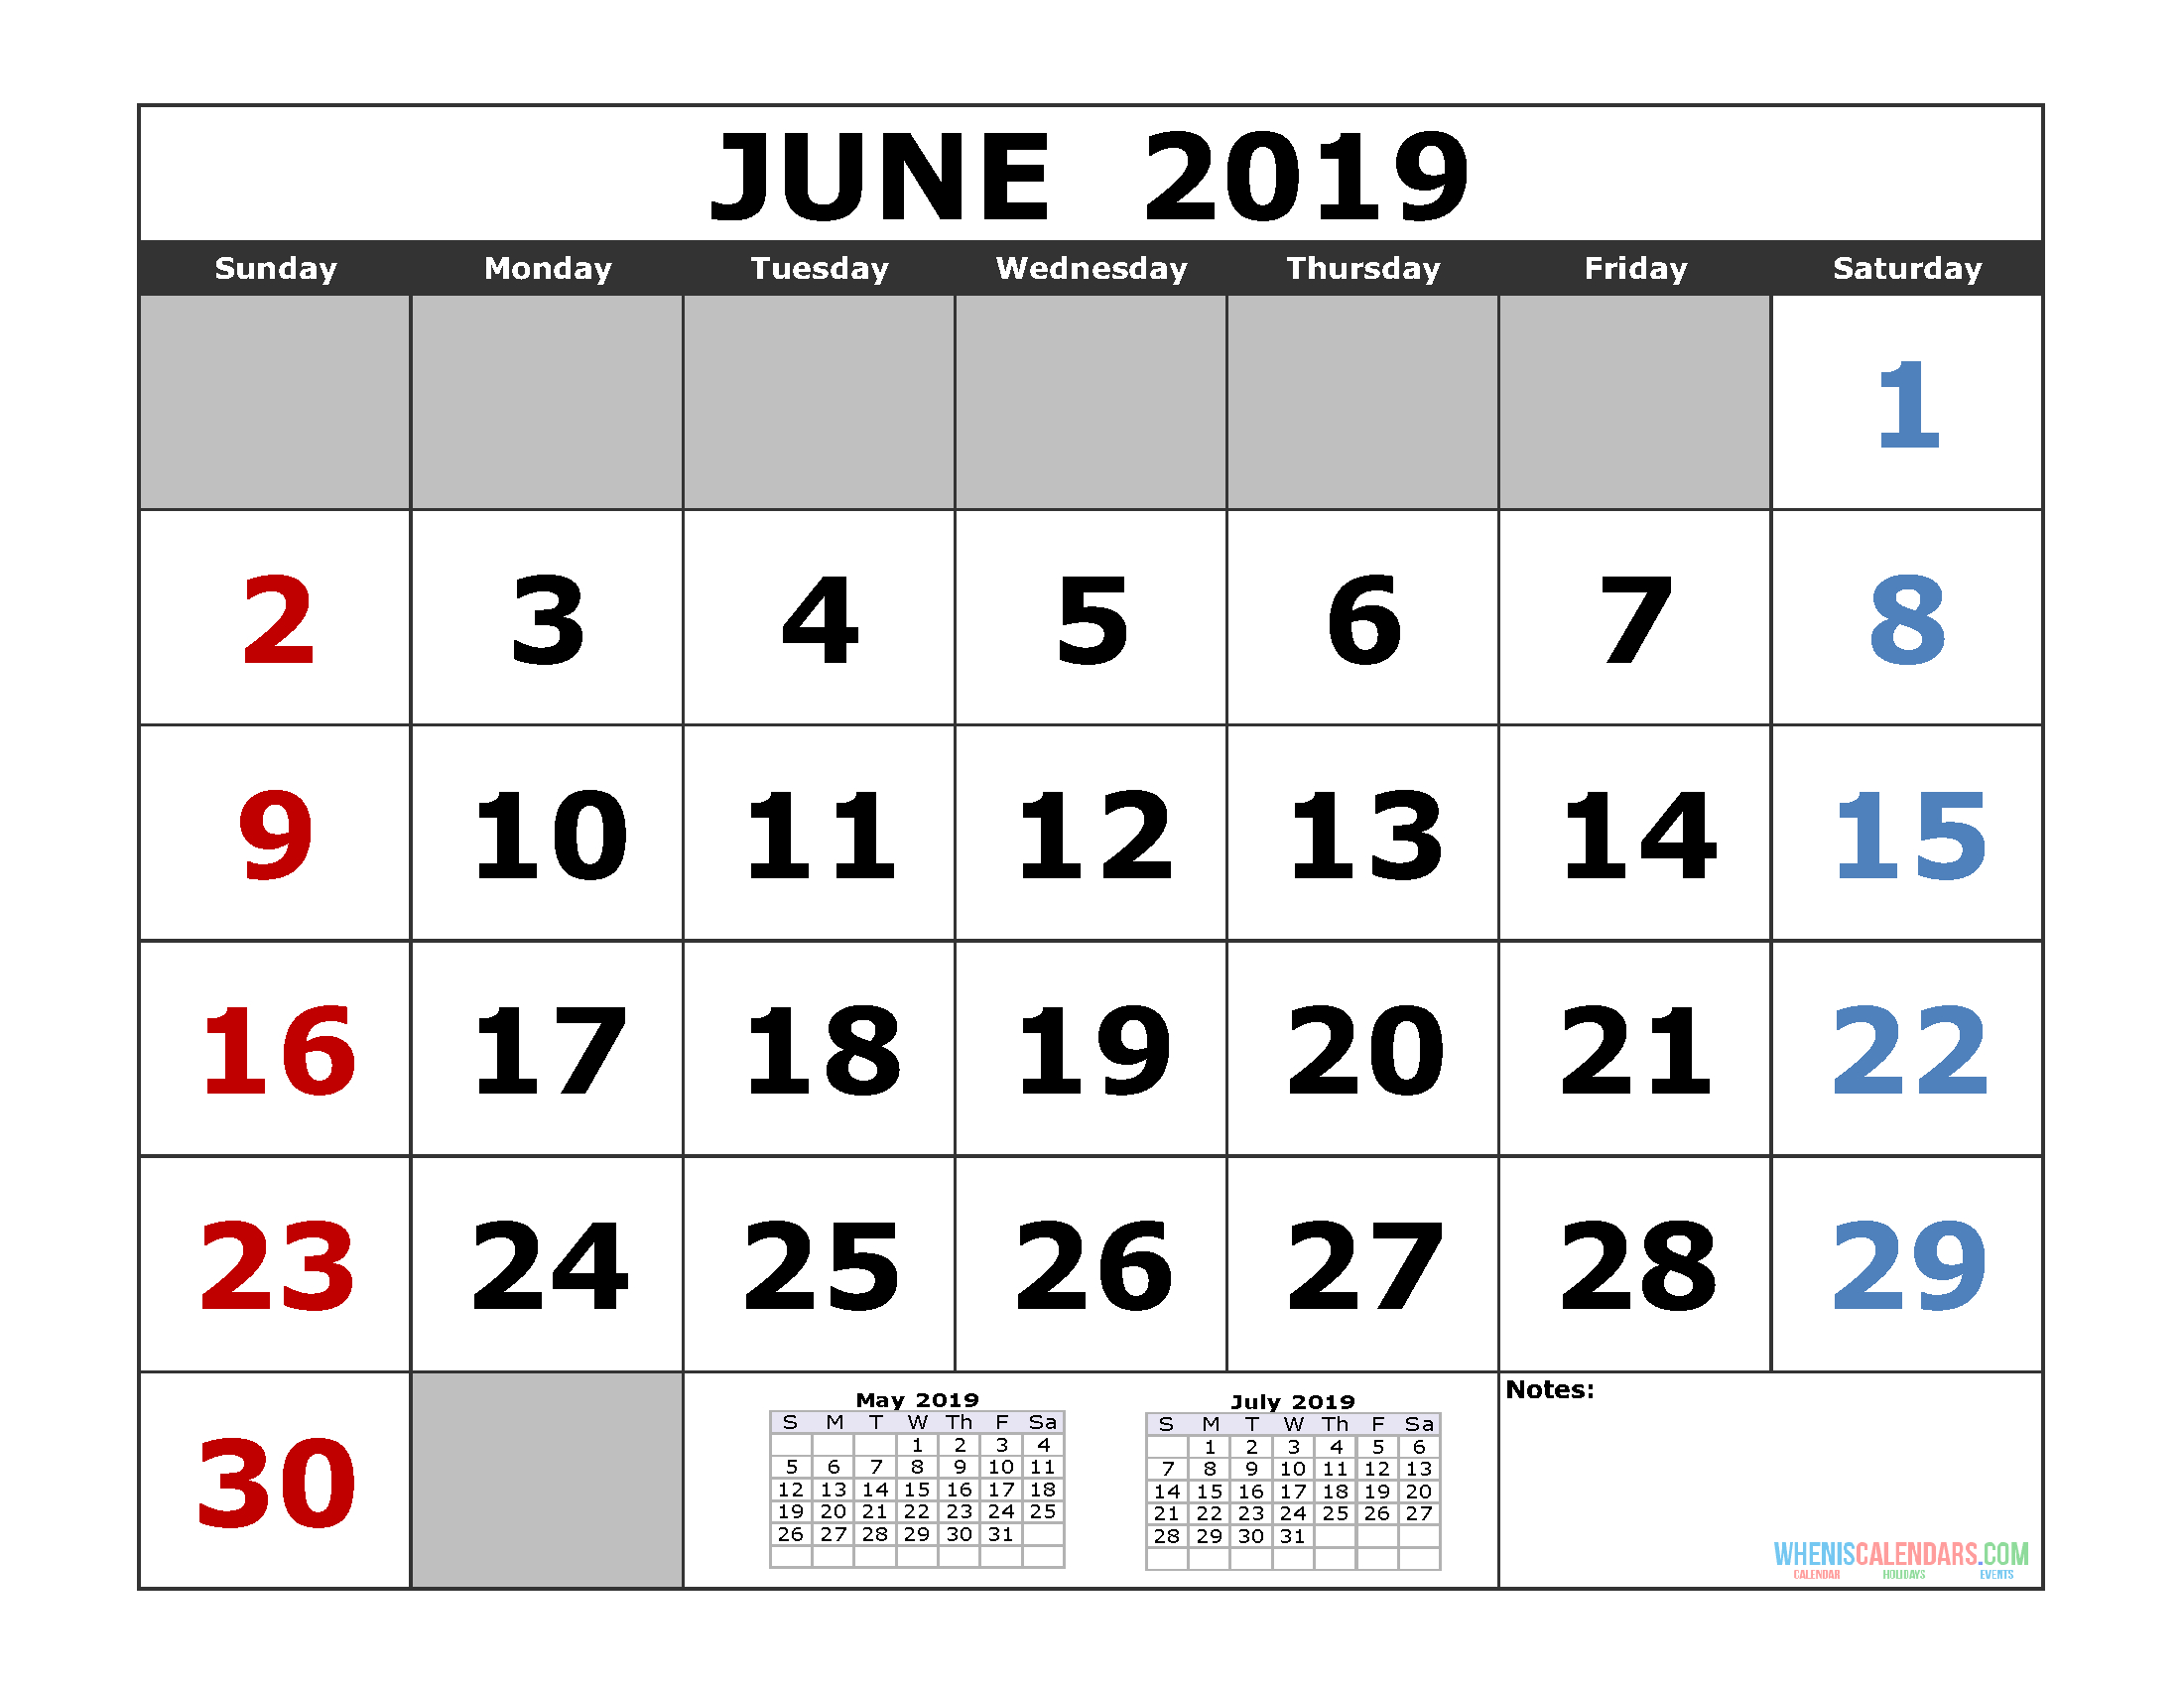 Free June 2019 Printable Calendar Templates [Us. Edition] | Free July 3 2019 Calendar